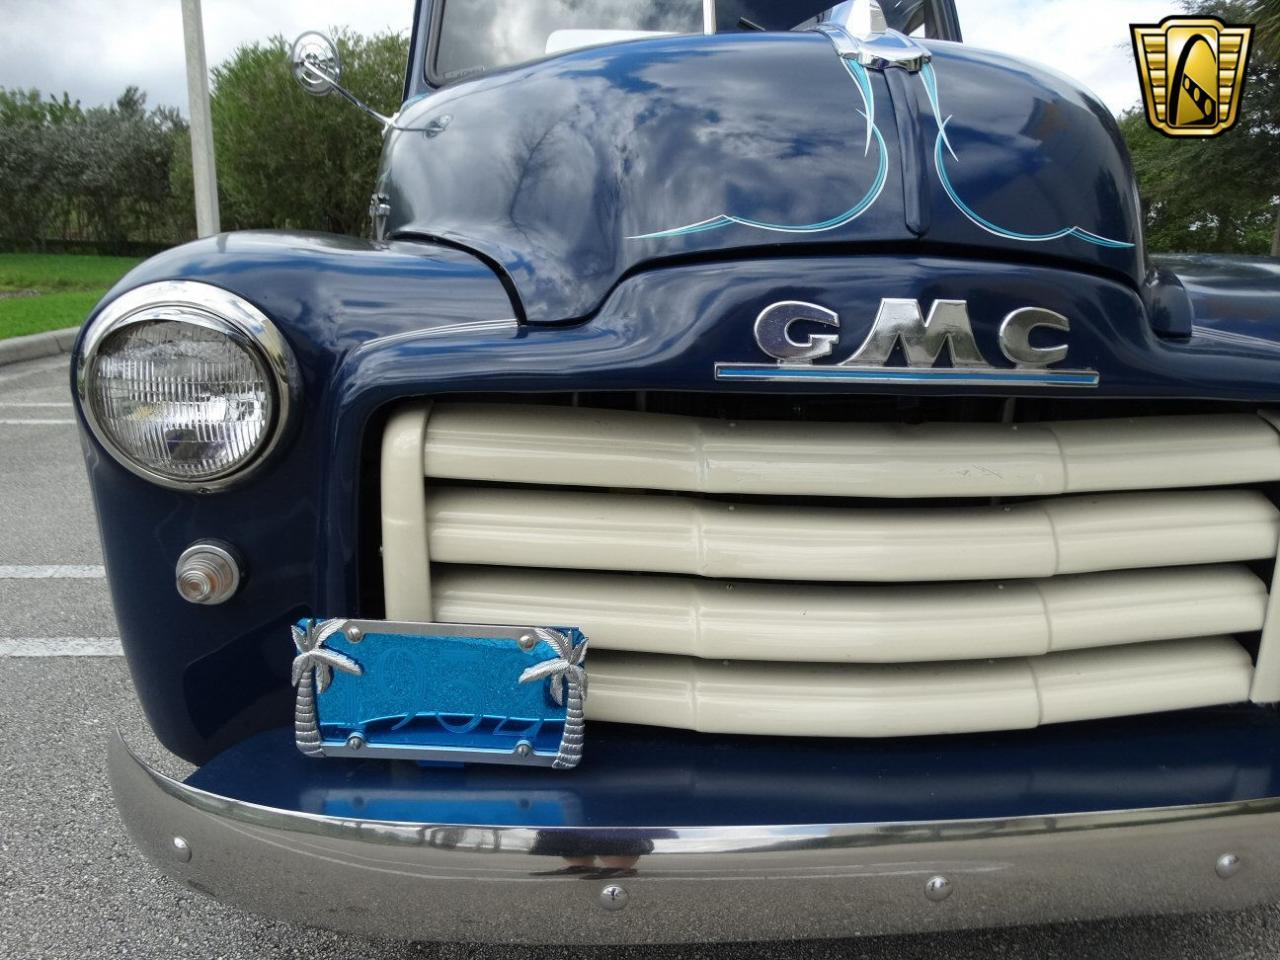 Large Picture of 1952 GMC Pickup - $30,595.00 - KNJB